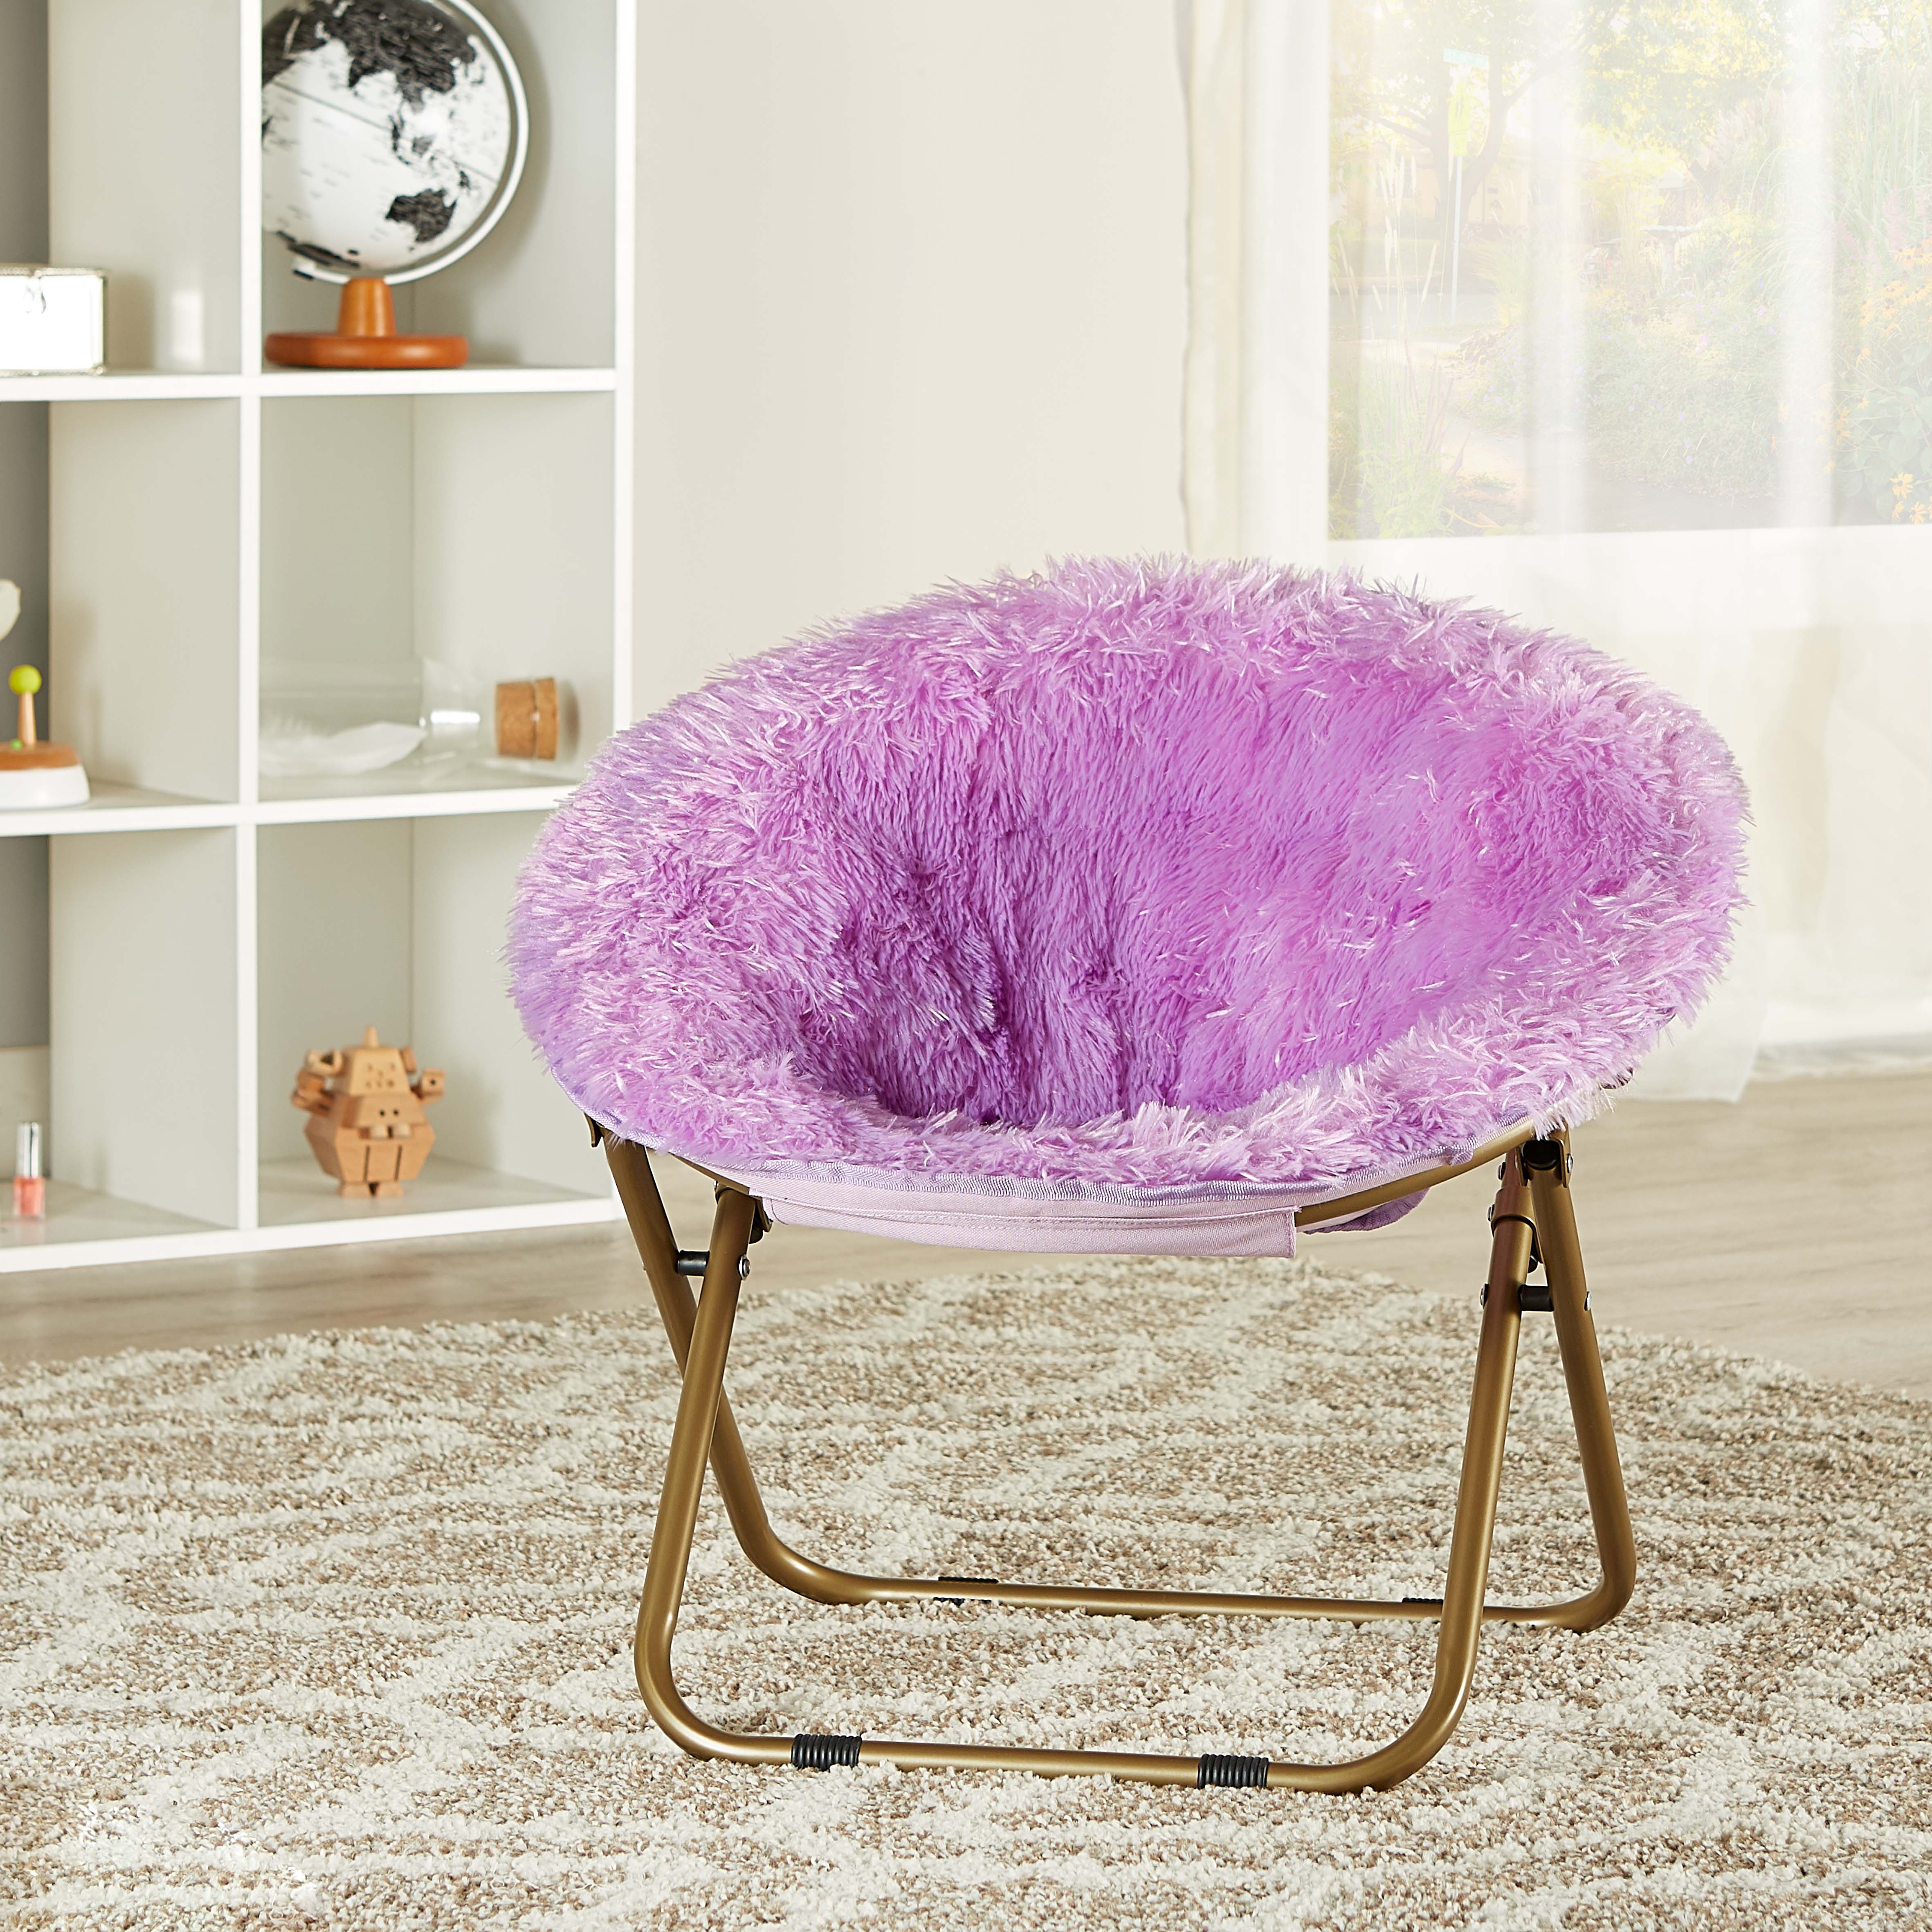 toddler saucer chair canada sturdy dining room chairs mainstays kids blair plush faux fur multiple